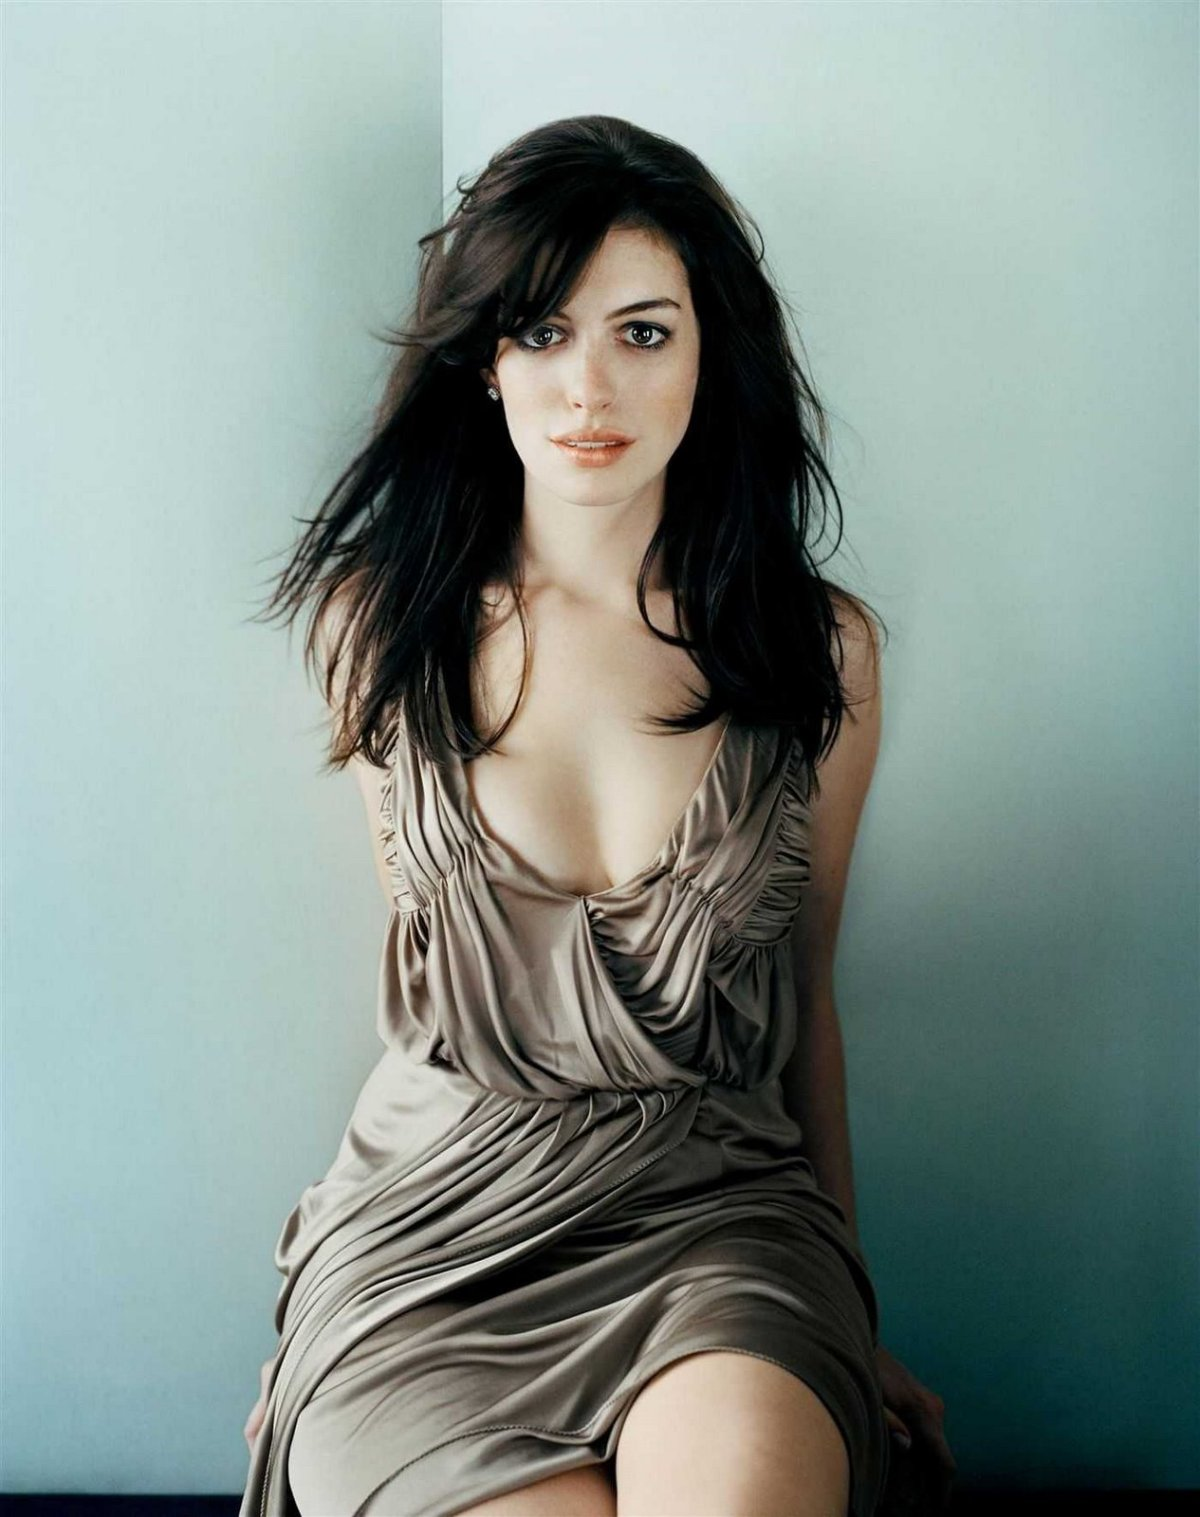 http://sweetcelebrity.files.wordpress.com/2008/06/hathaway-002.jpg?w=1200